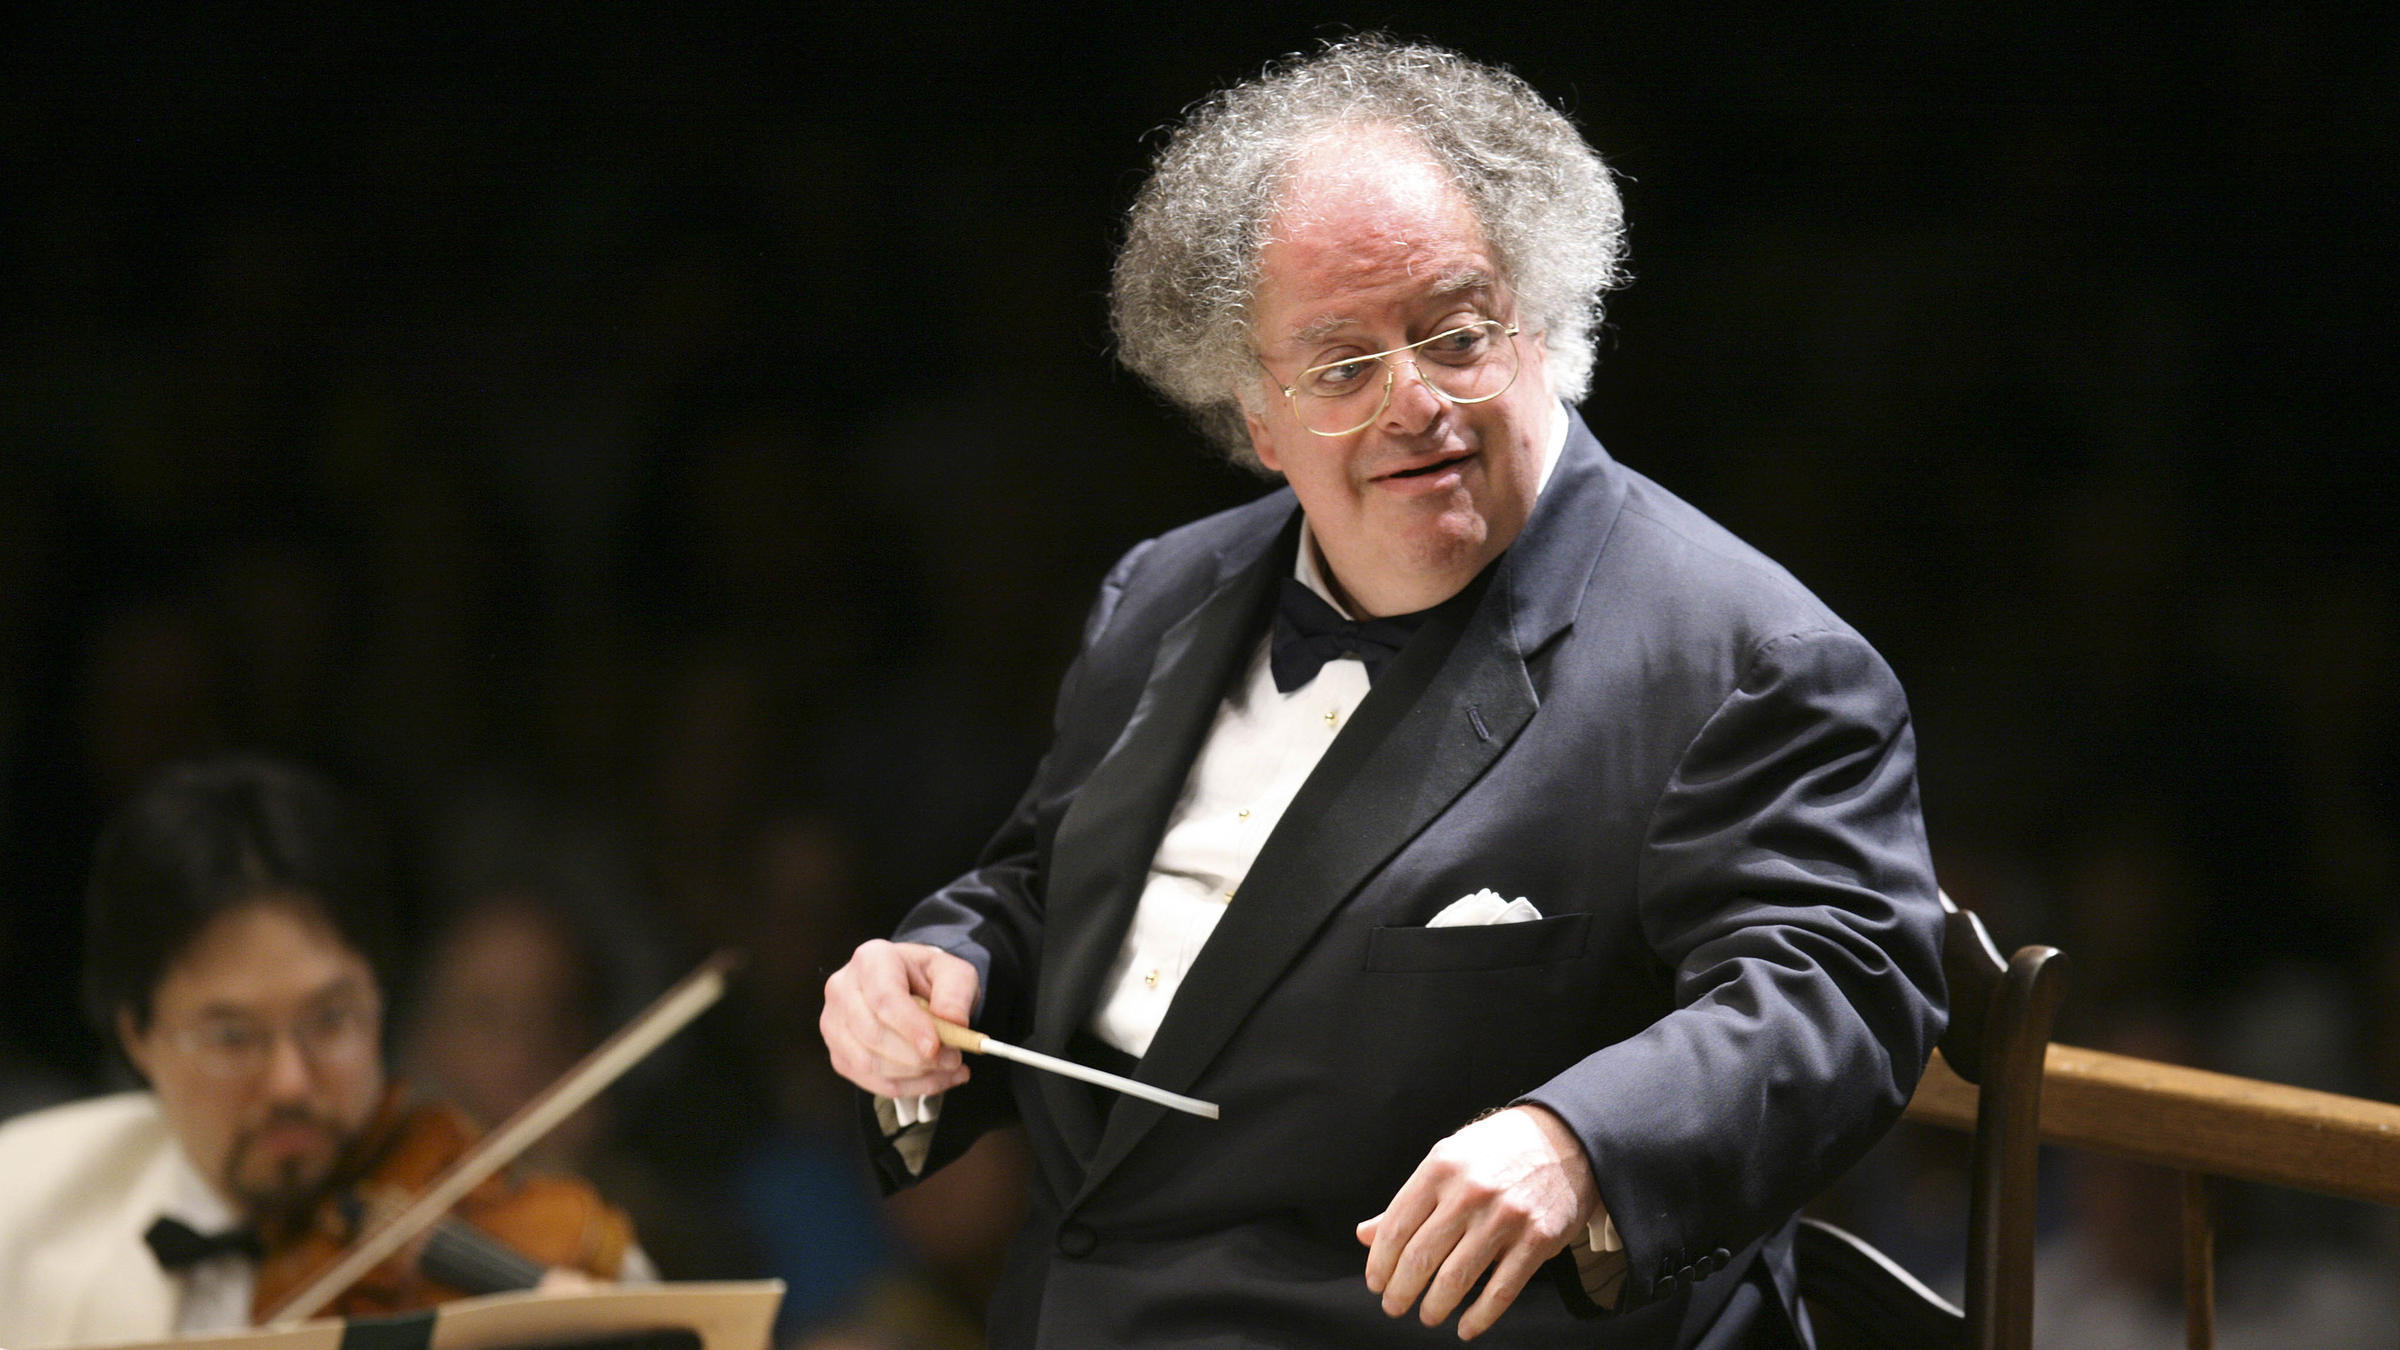 Met Opera suspends James Levine after sexual abuse allegations